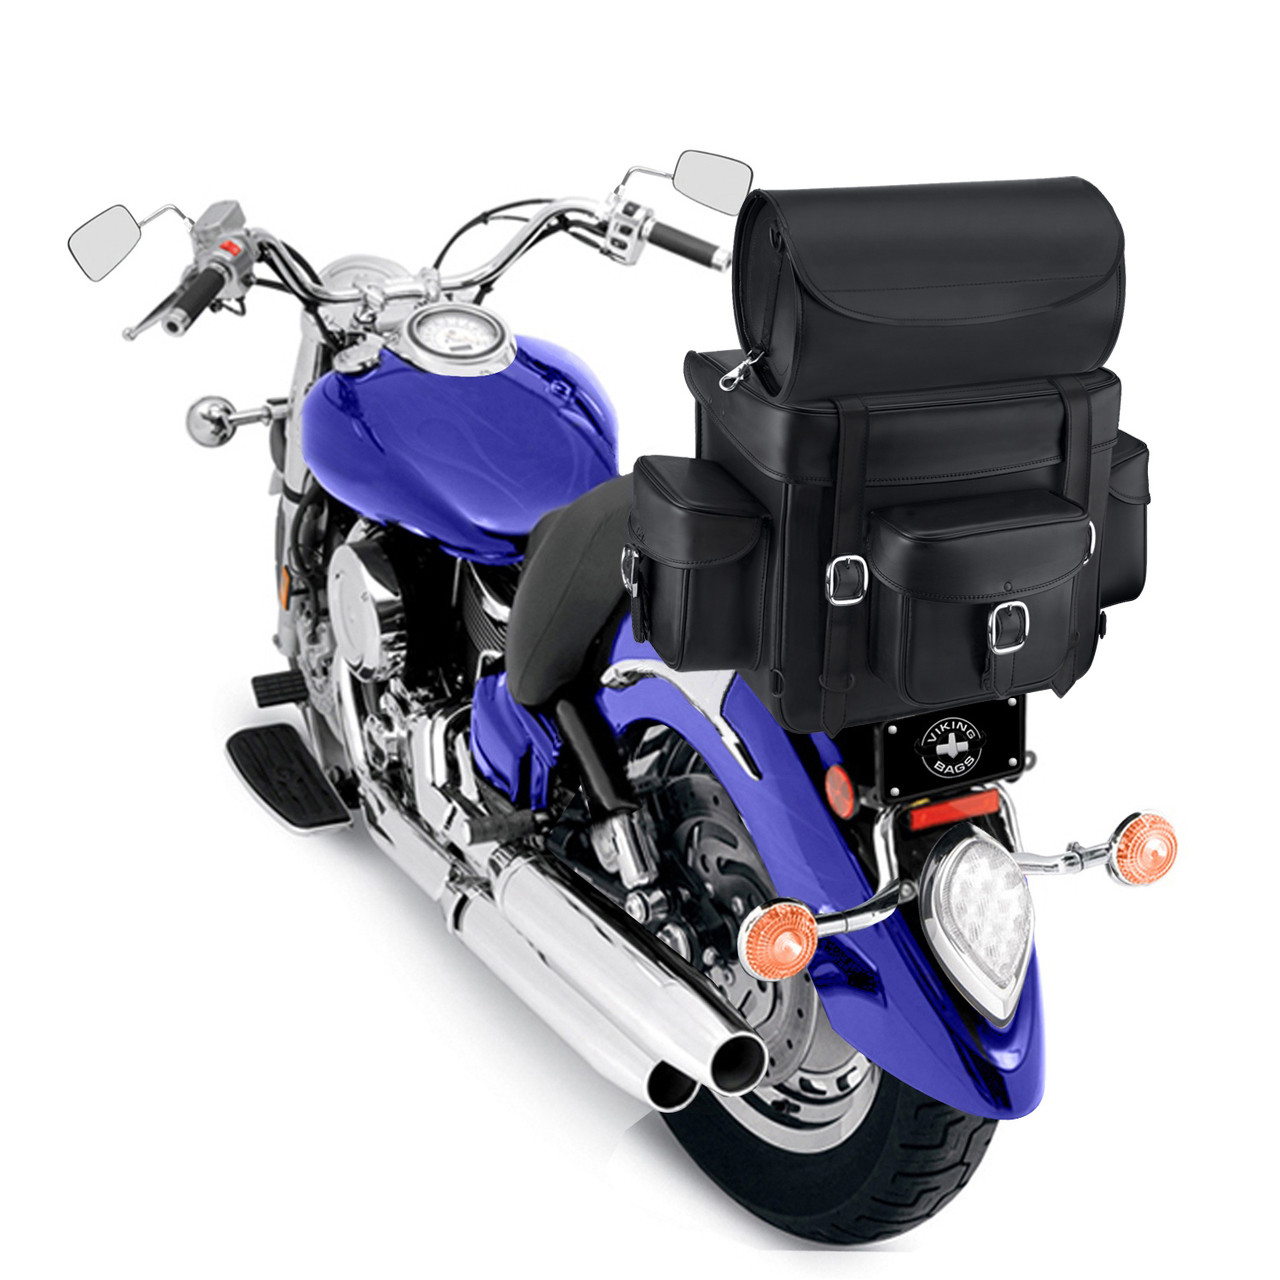 Revival Series Large Sissy Bar Bag On Bike View